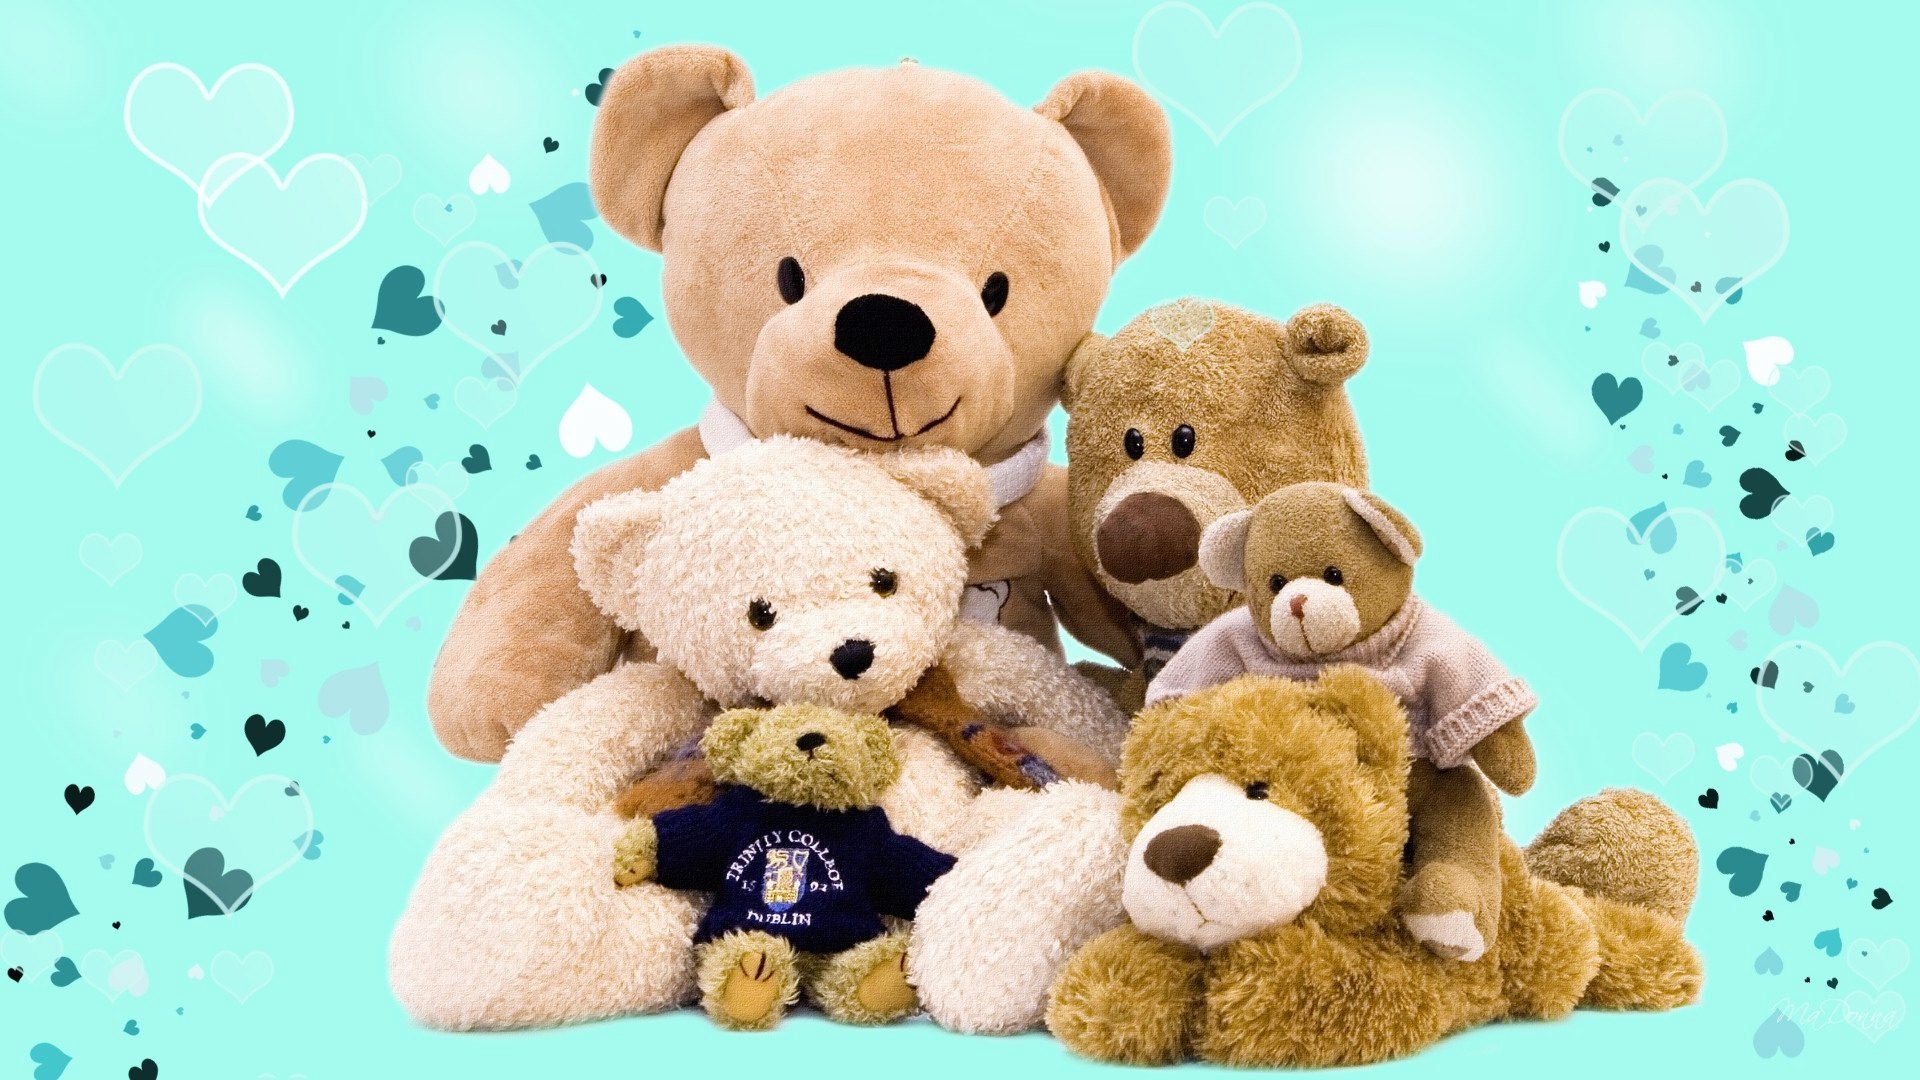 Teddy Bear Wallpaper 2013